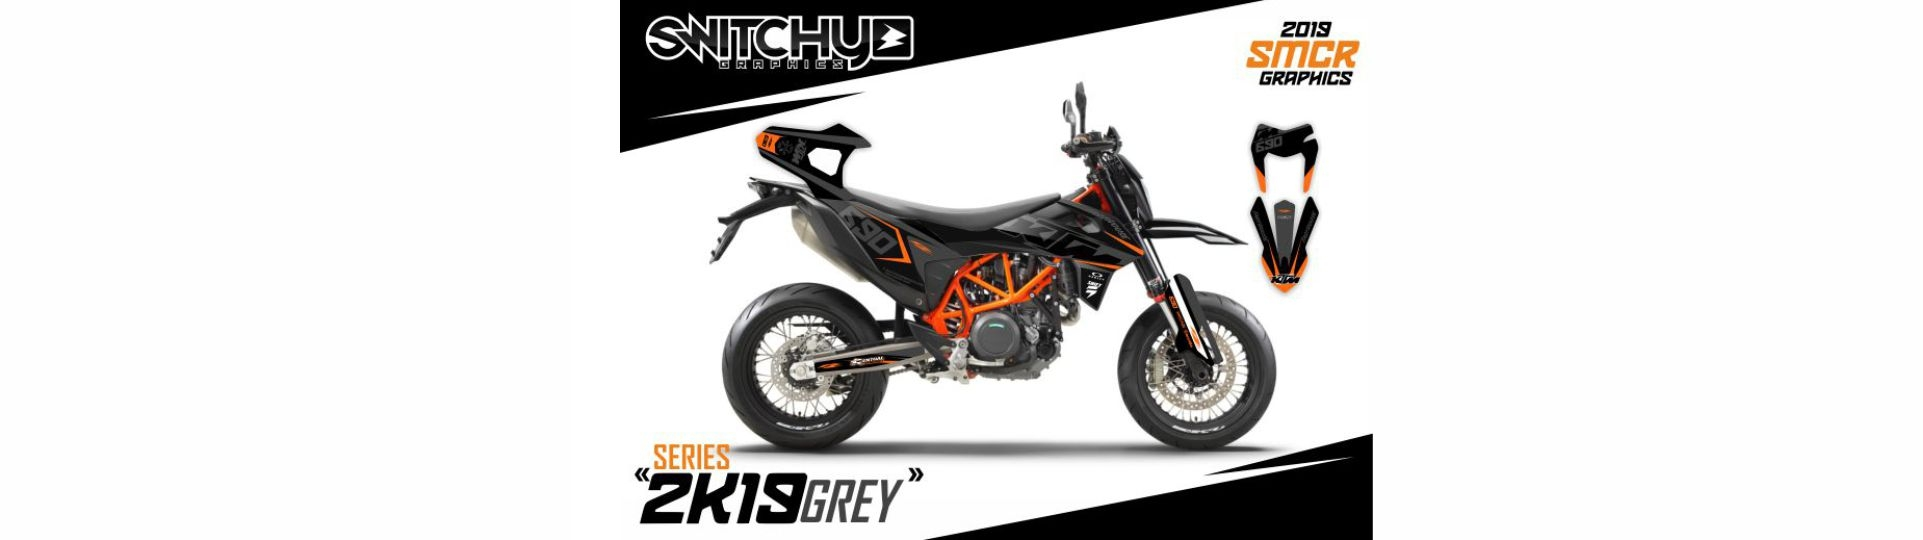 Graphics kit for SMCR 690 2019